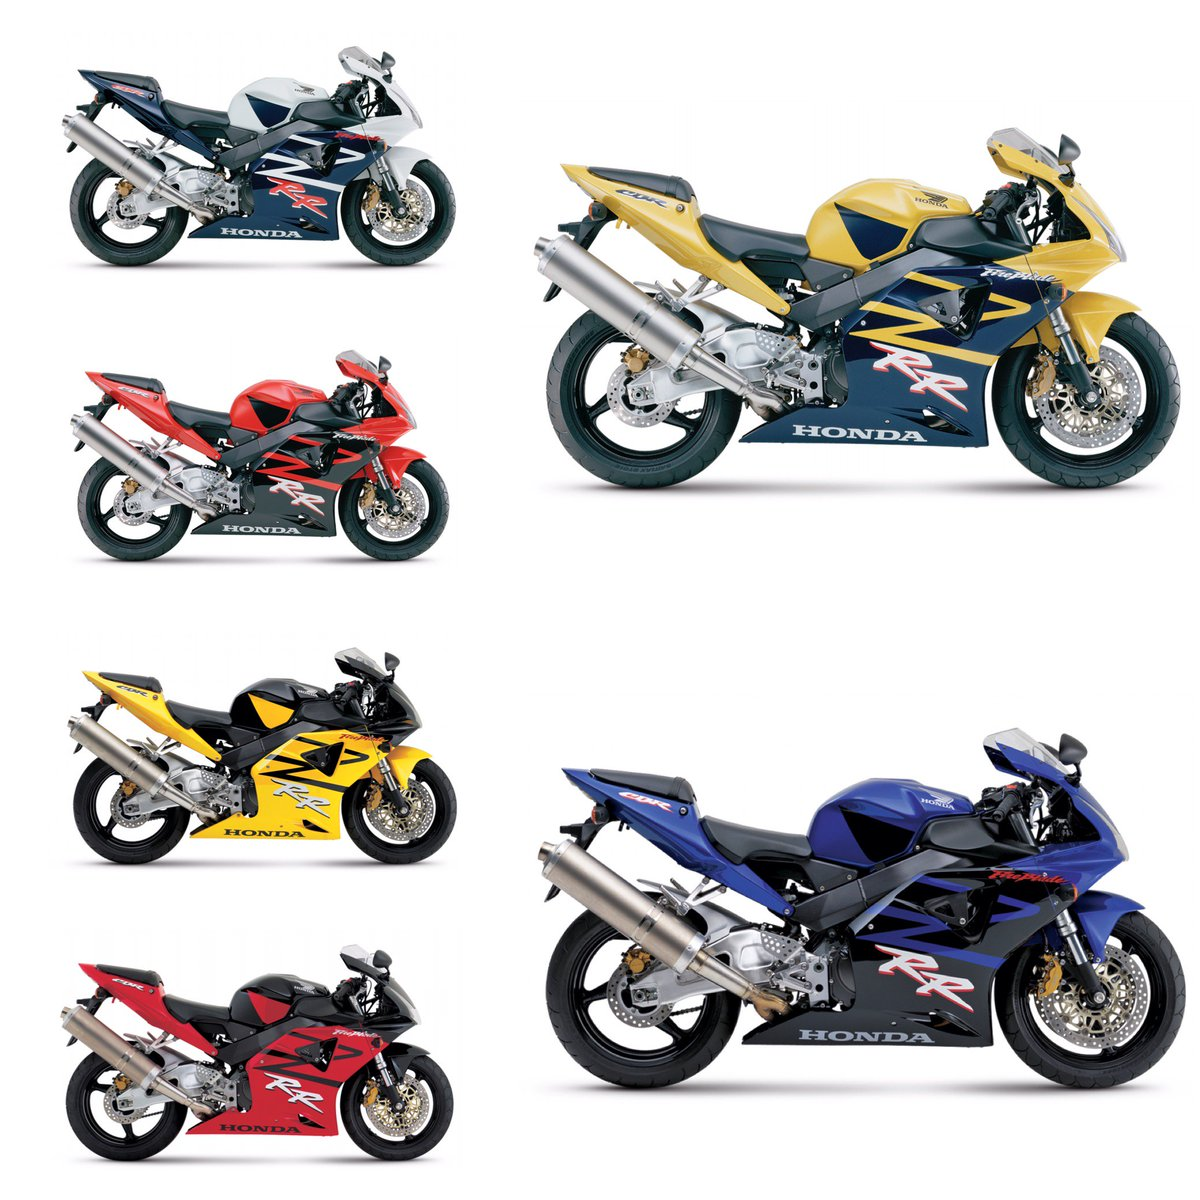 #25YearsofFireblade - 2002-03 to many the '954' is considered to be one of the best #Fireblades ever built - hands up who agrees... #Honda<br>http://pic.twitter.com/IUmfNXfsSM